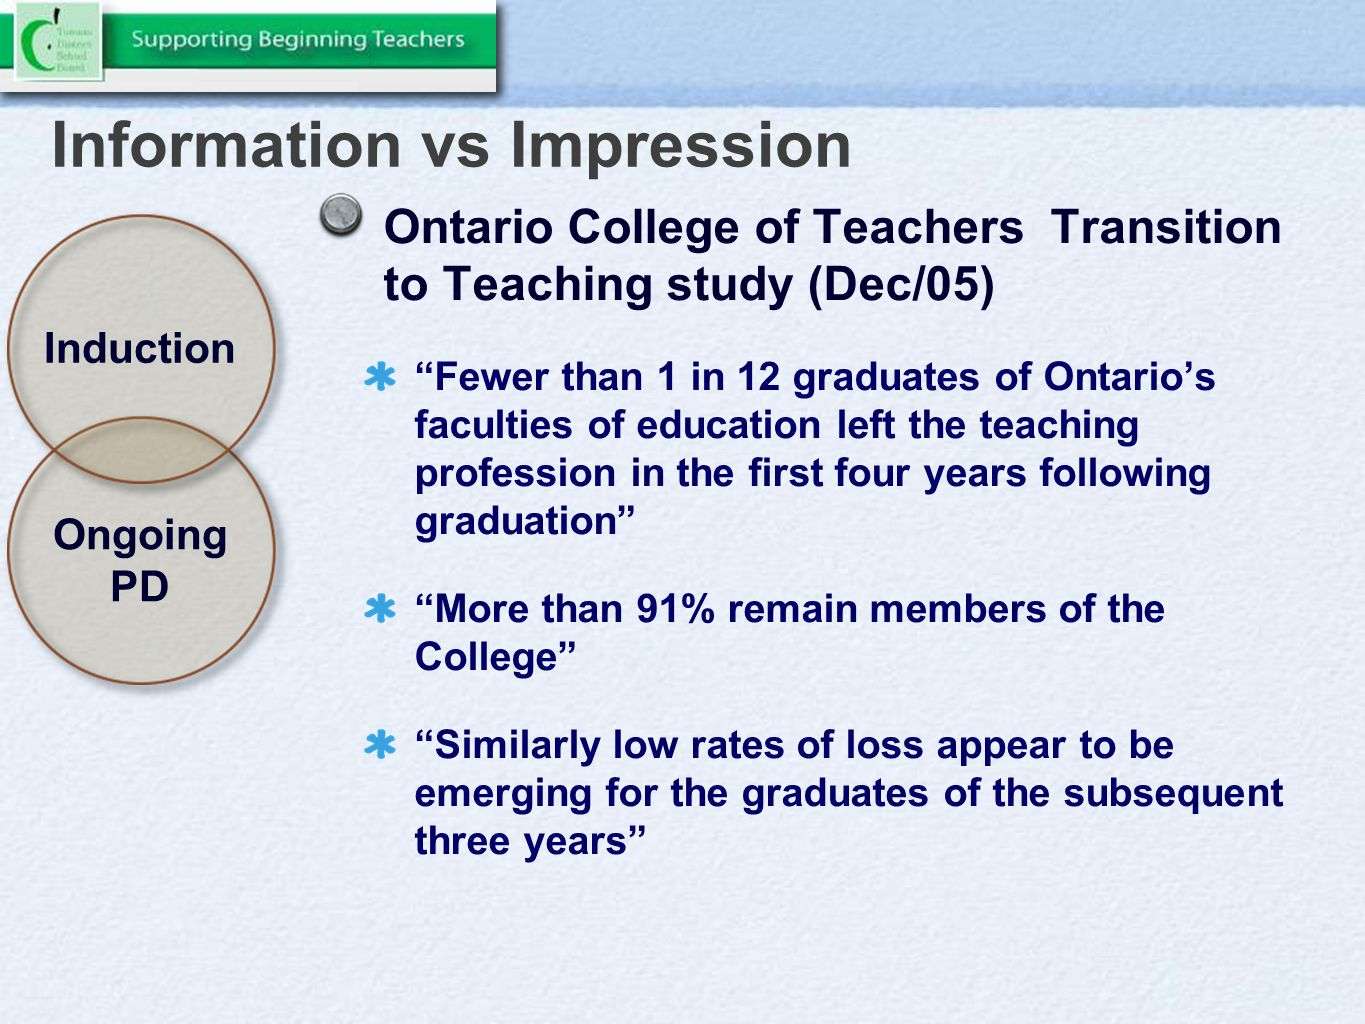 Information vs Impression Induction Ongoing PD Ontario College of Teachers Transition to Teaching study (Dec/05) Fewer than 1 in 12 graduates of Ontario's faculties of education left the teaching profession in the first four years following graduation More than 91% remain members of the College Similarly low rates of loss appear to be emerging for the graduates of the subsequent three years